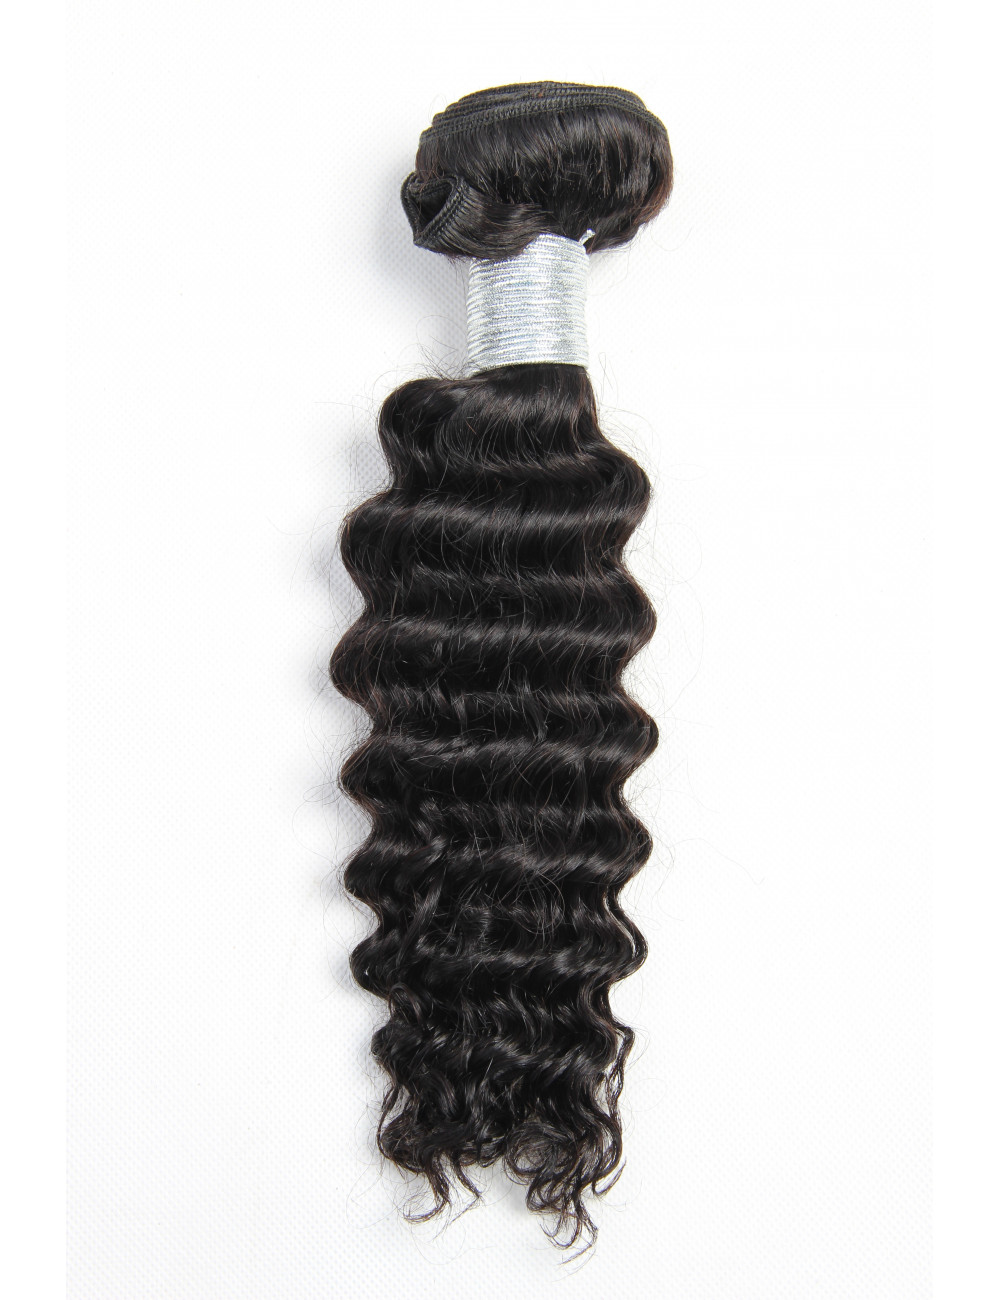 Mèchse indiennes kinky curly 14""